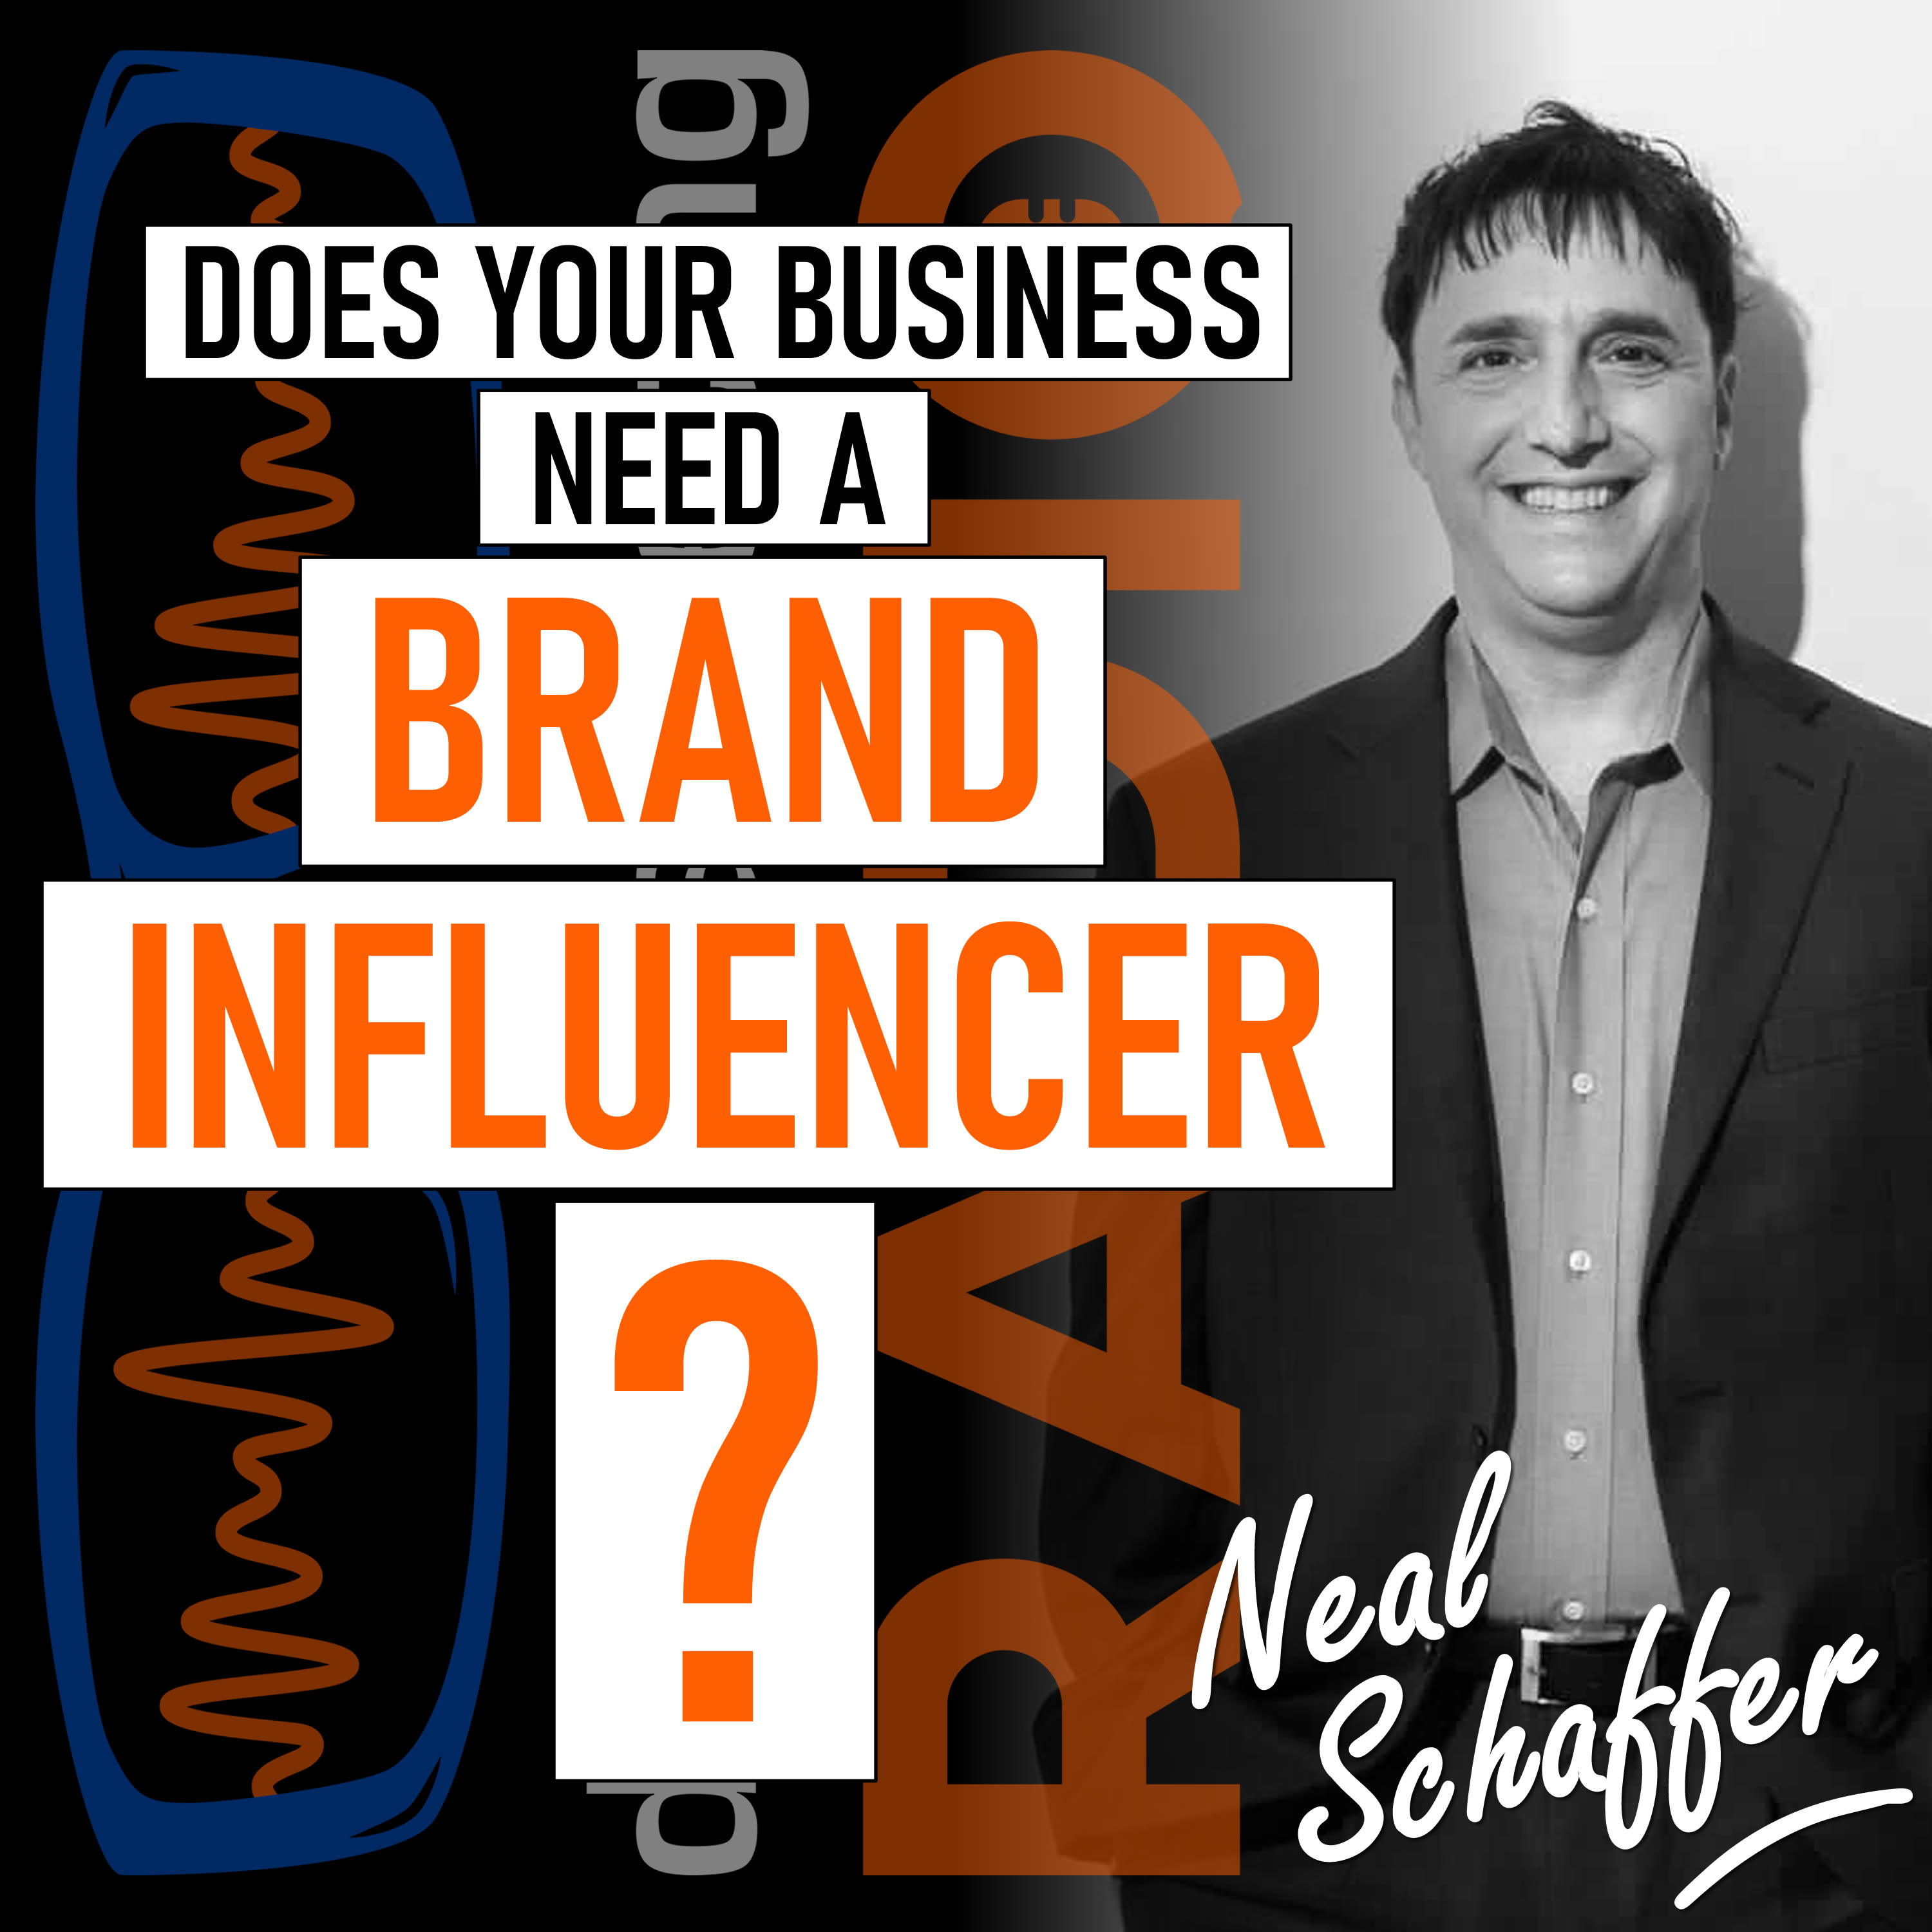 What are Brand Influencers and Does Your Business Need a Brand Influencer?   Neal Schaffer